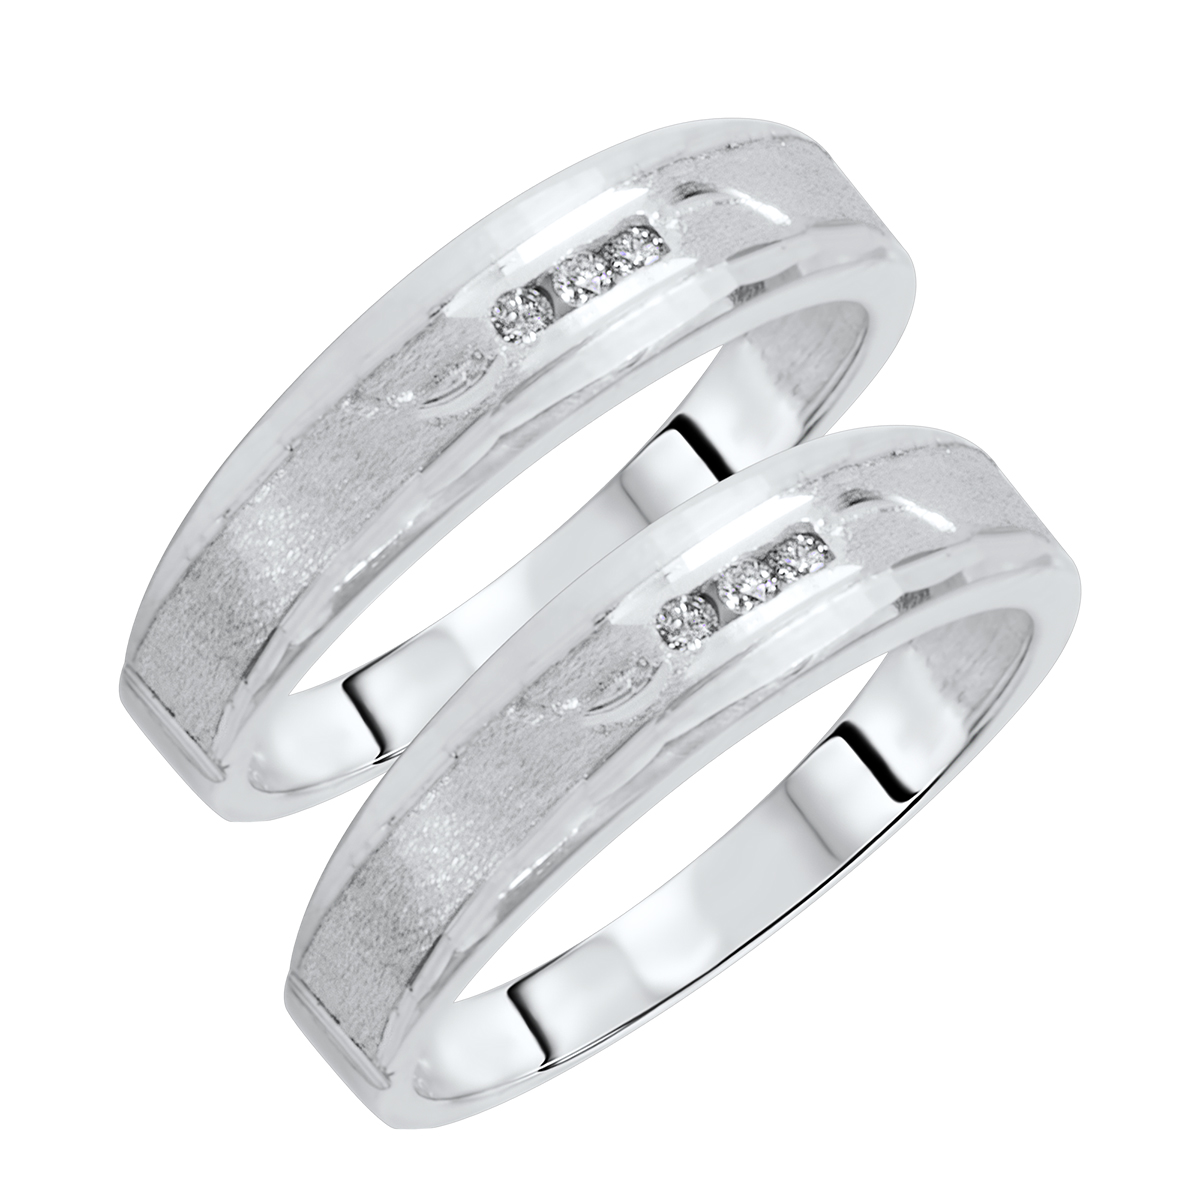 1/10 CT. T.W. Round Cut Mens  Same Sex Wedding Band Set 14K white Gold- Size 8